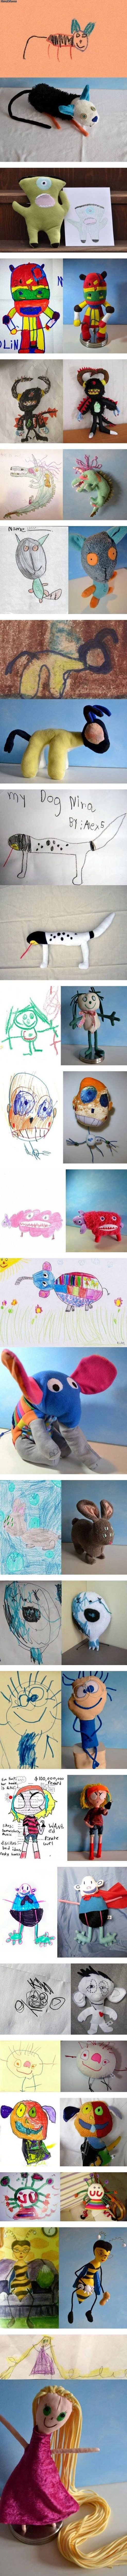 Funny pictures about If childrenu0027s drawings were